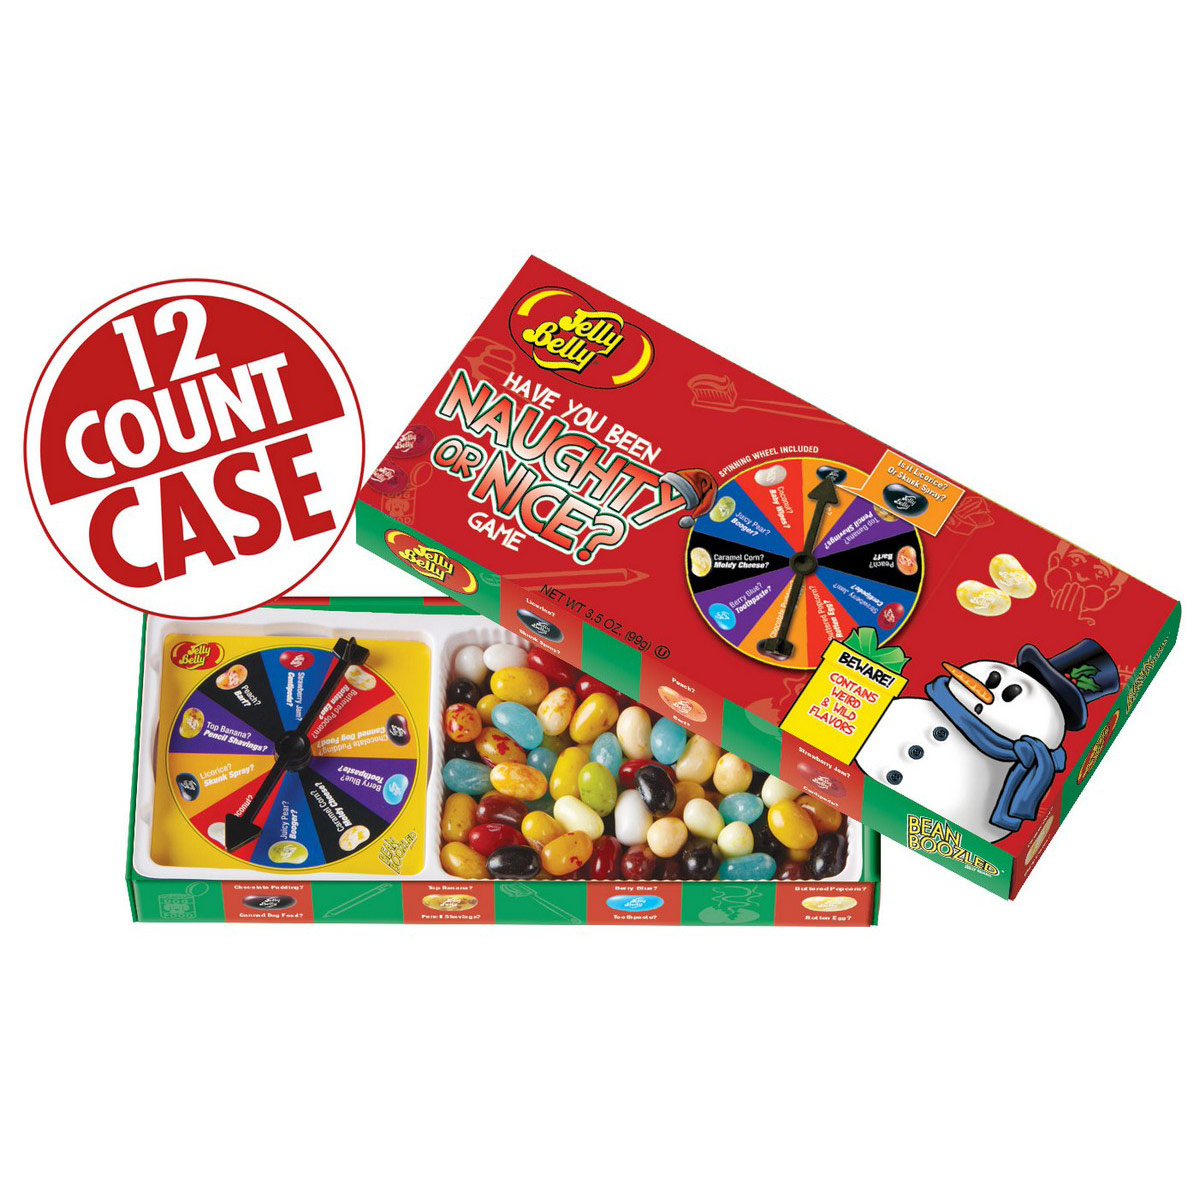 Naughty or Nice Jelly Bean Spinner Gift Box - 3.5 oz Box - 12 Count Case